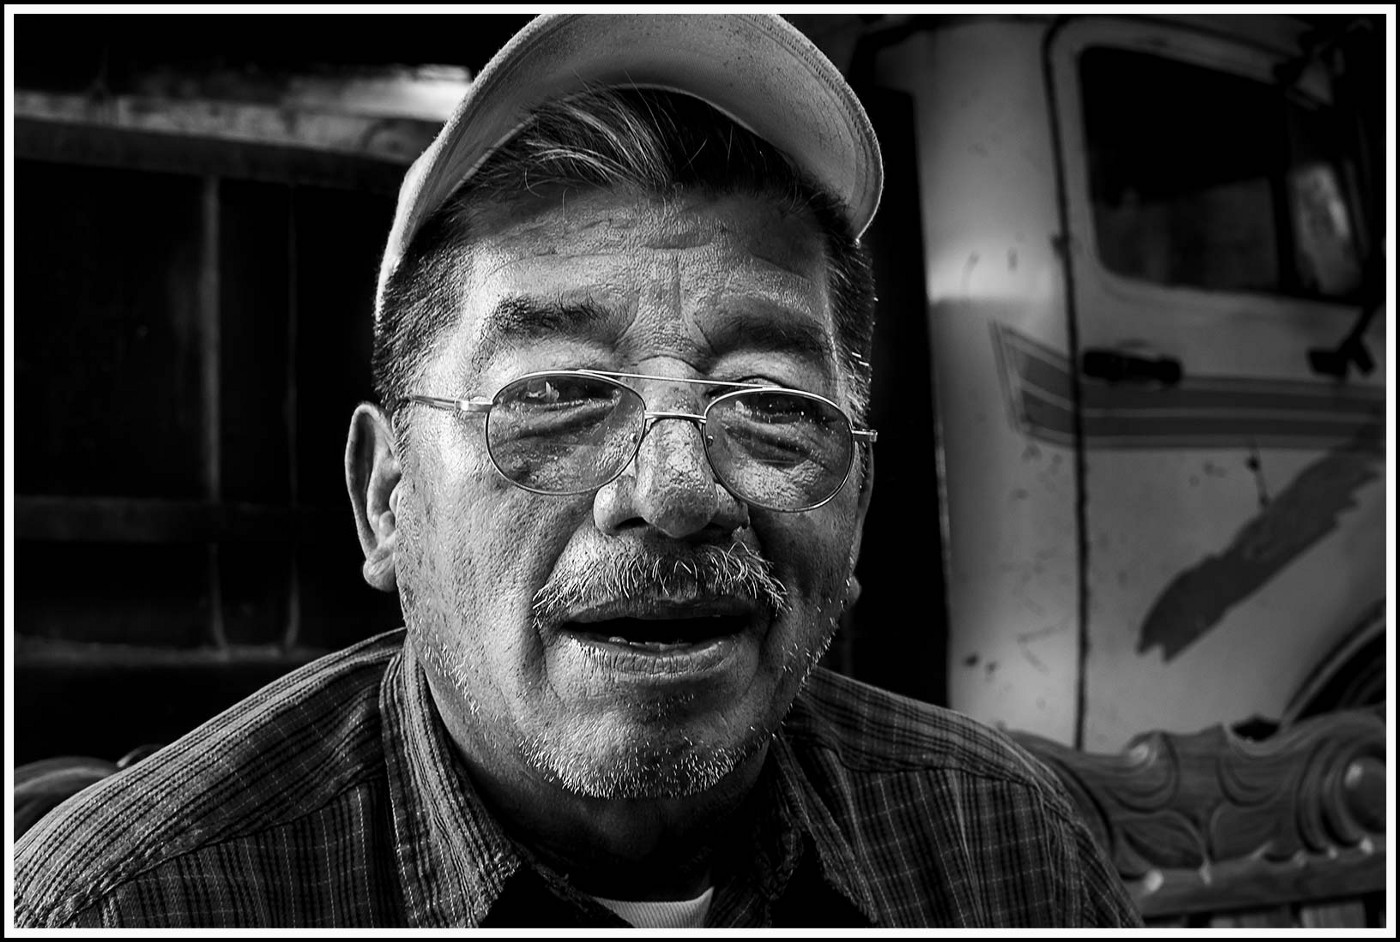 Portrait of Domingo Gonzales, survivor of the Guatemalan Civil War